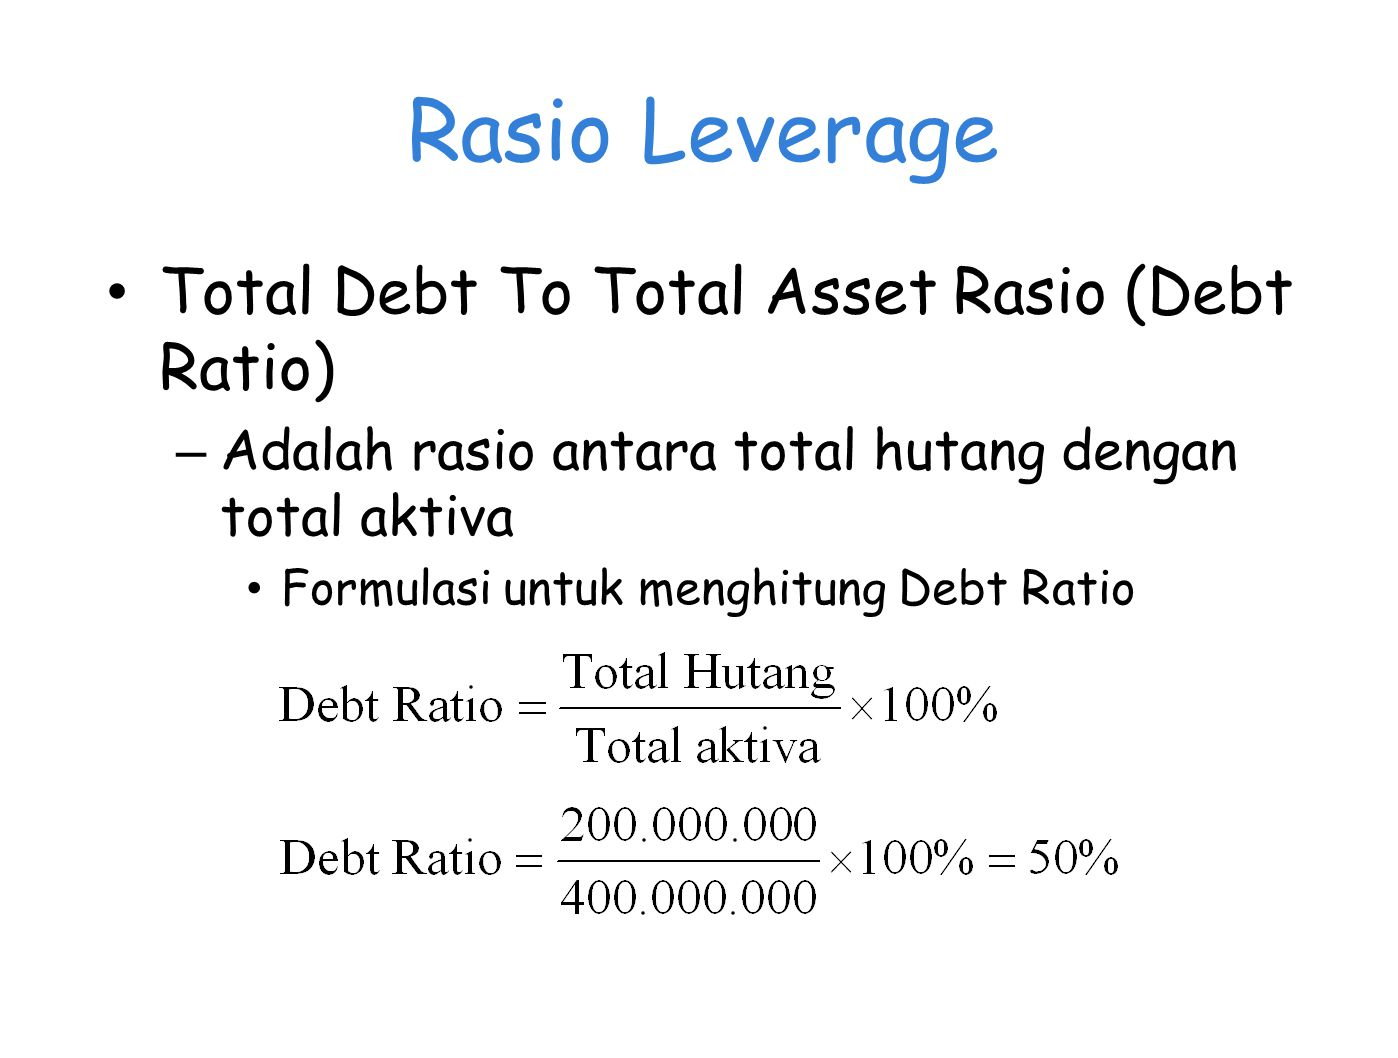 Rasio Leverage Total Debt To Total Asset Rasio (Debt Ratio)